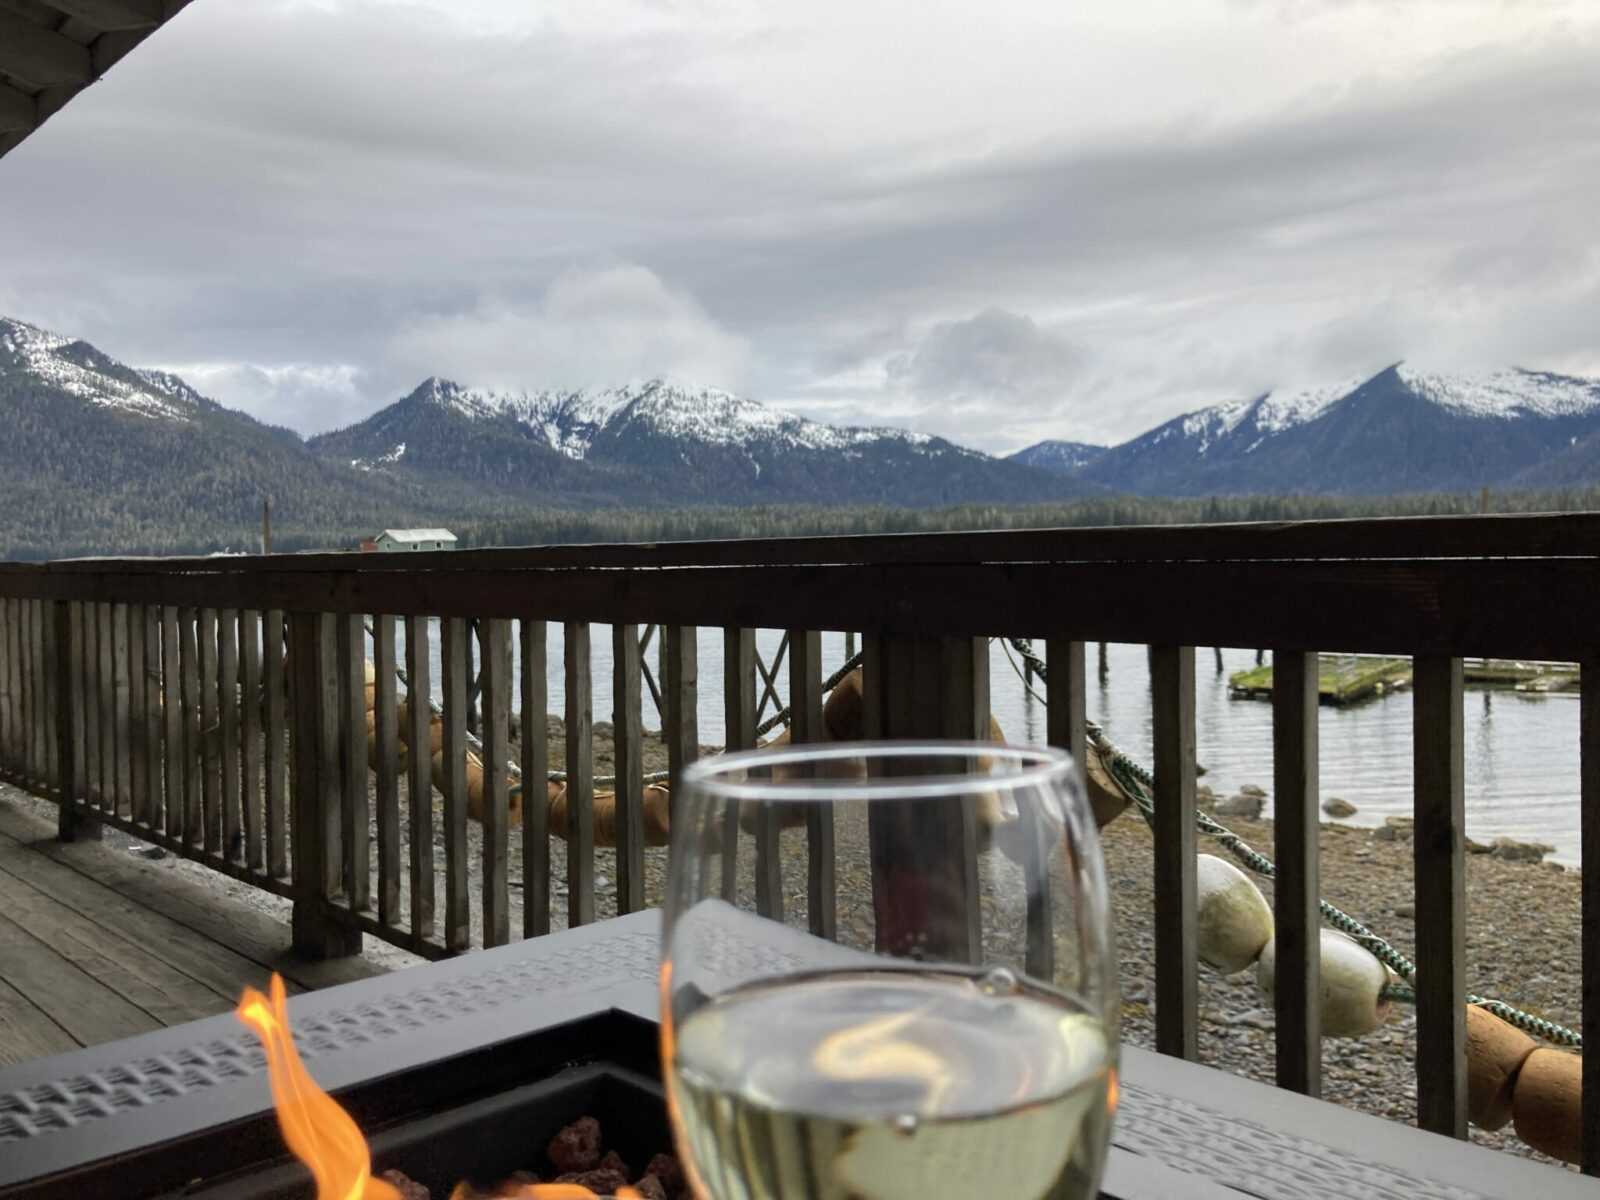 distant mountains with snow and forested lowlands. In the foreground there is a propane firepit on a deck with buoys and a beach at low tide. An out of focus wineglass is in the front